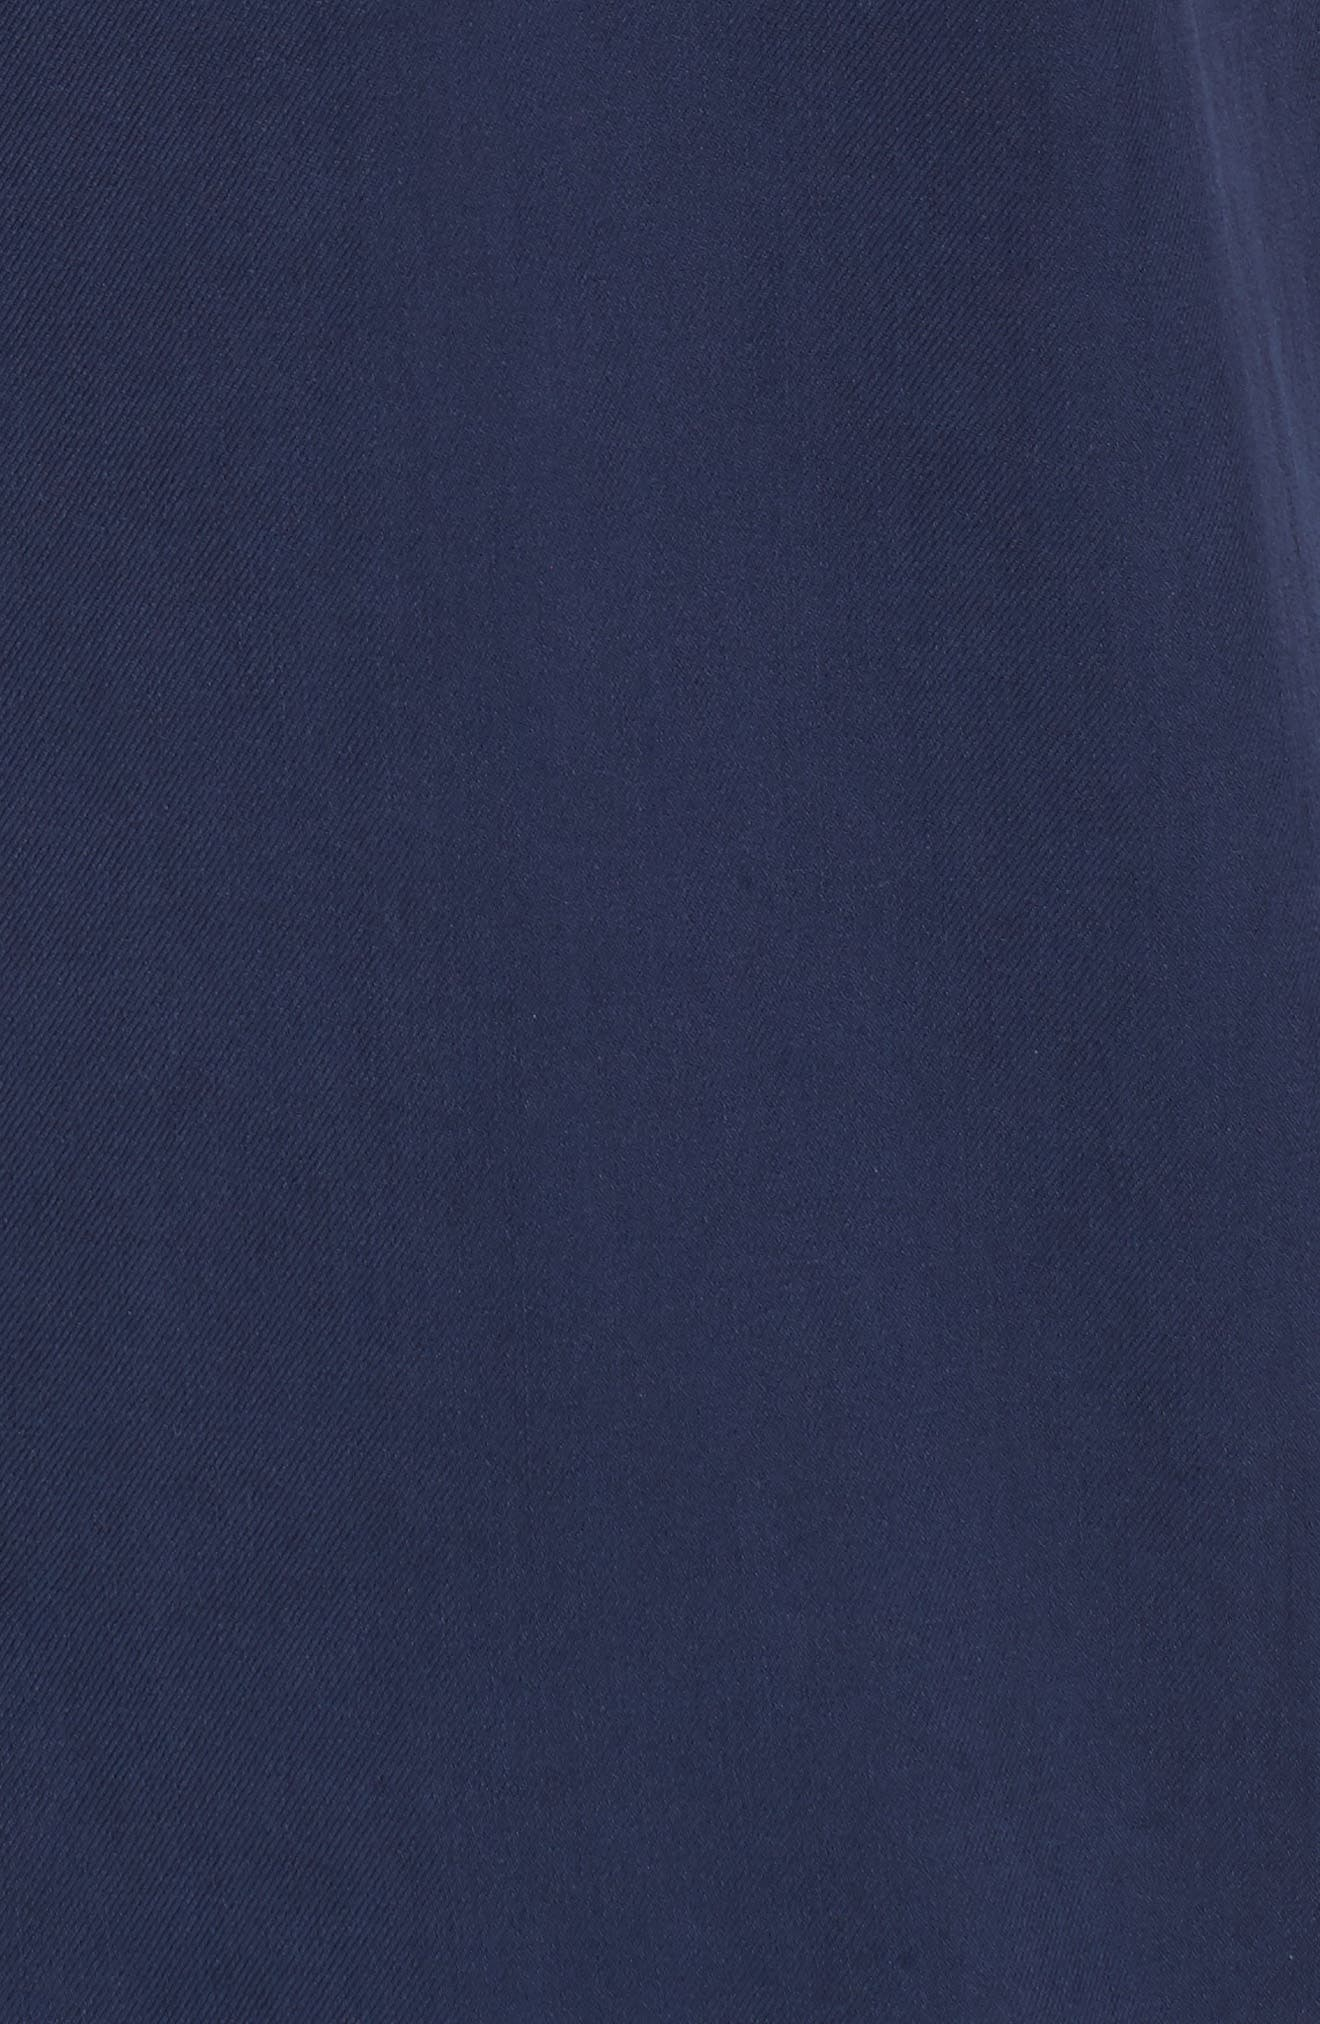 Catalina Silk Camp Shirt,                             Alternate thumbnail 5, color,                             Navy